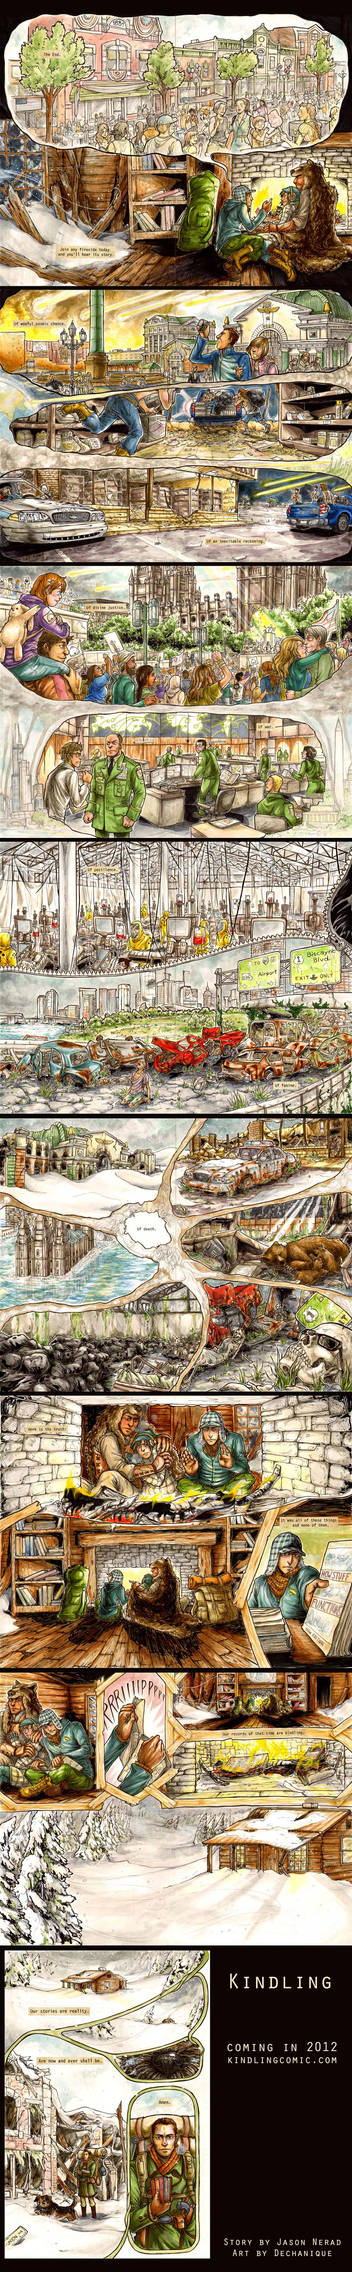 Kindling Prologue: Pages 1 - 15